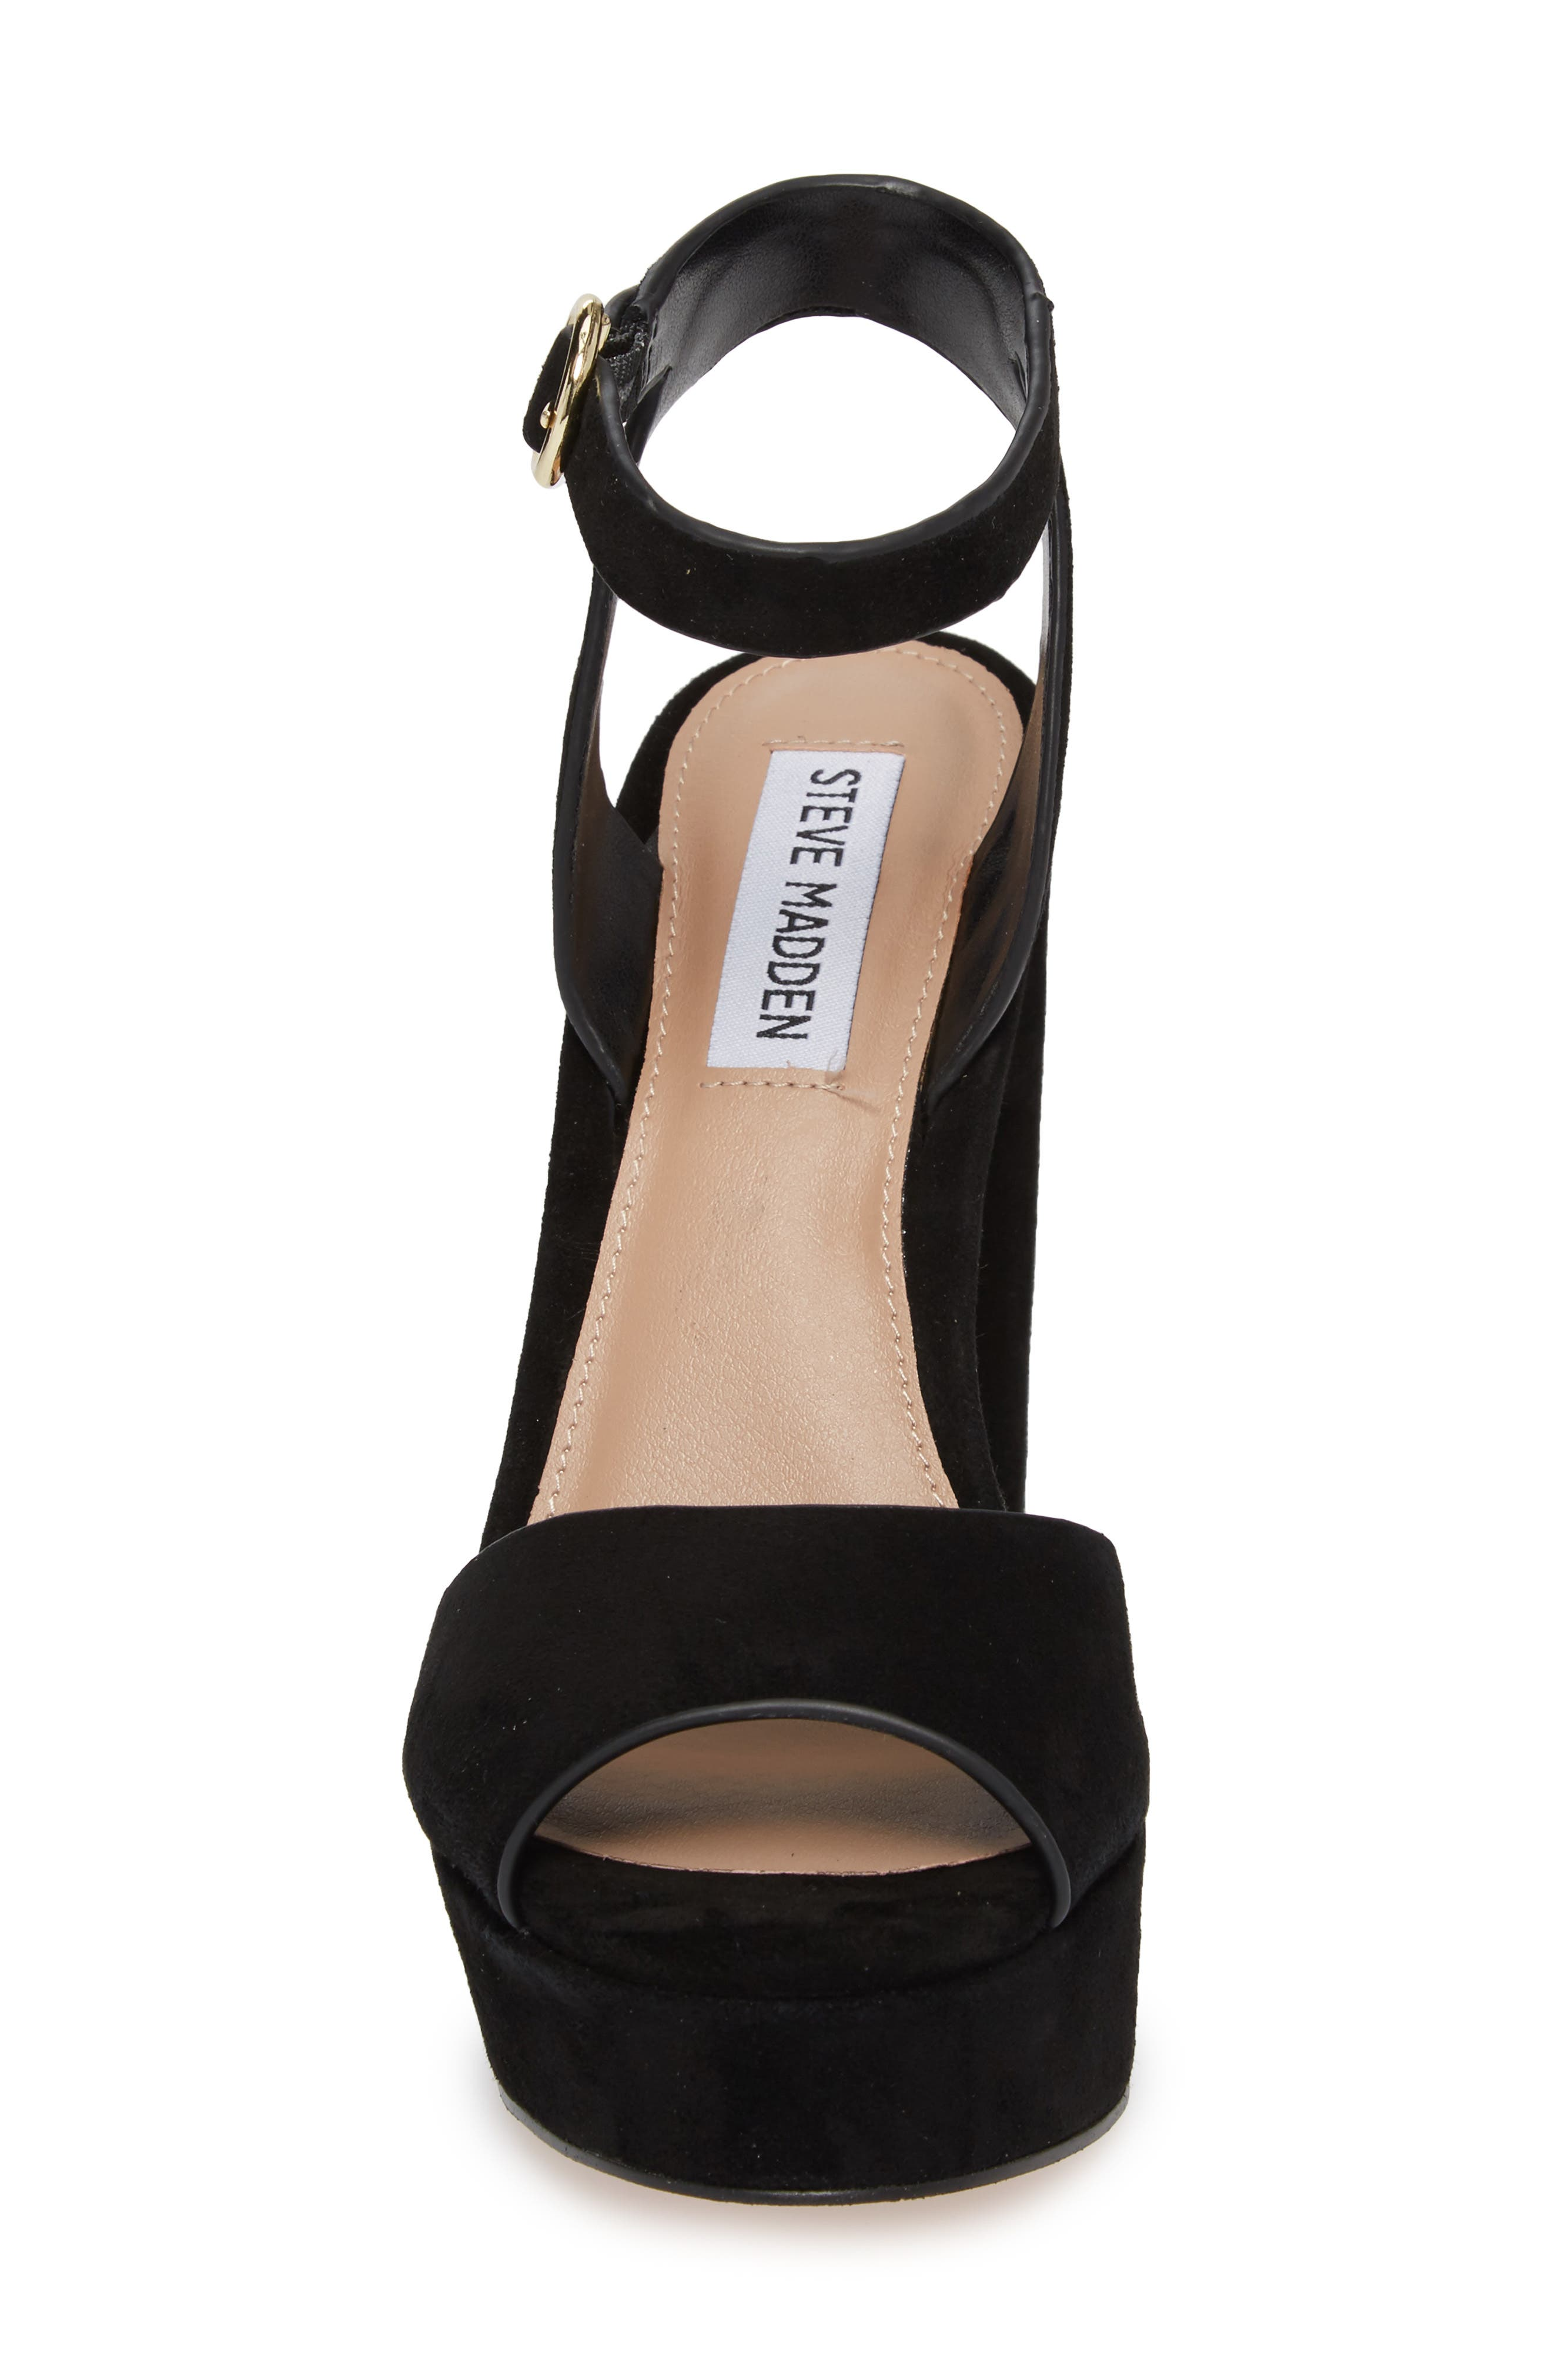 STEVE MADDEN, Madeline Platform Sandal, Alternate thumbnail 4, color, BLACK SUEDE